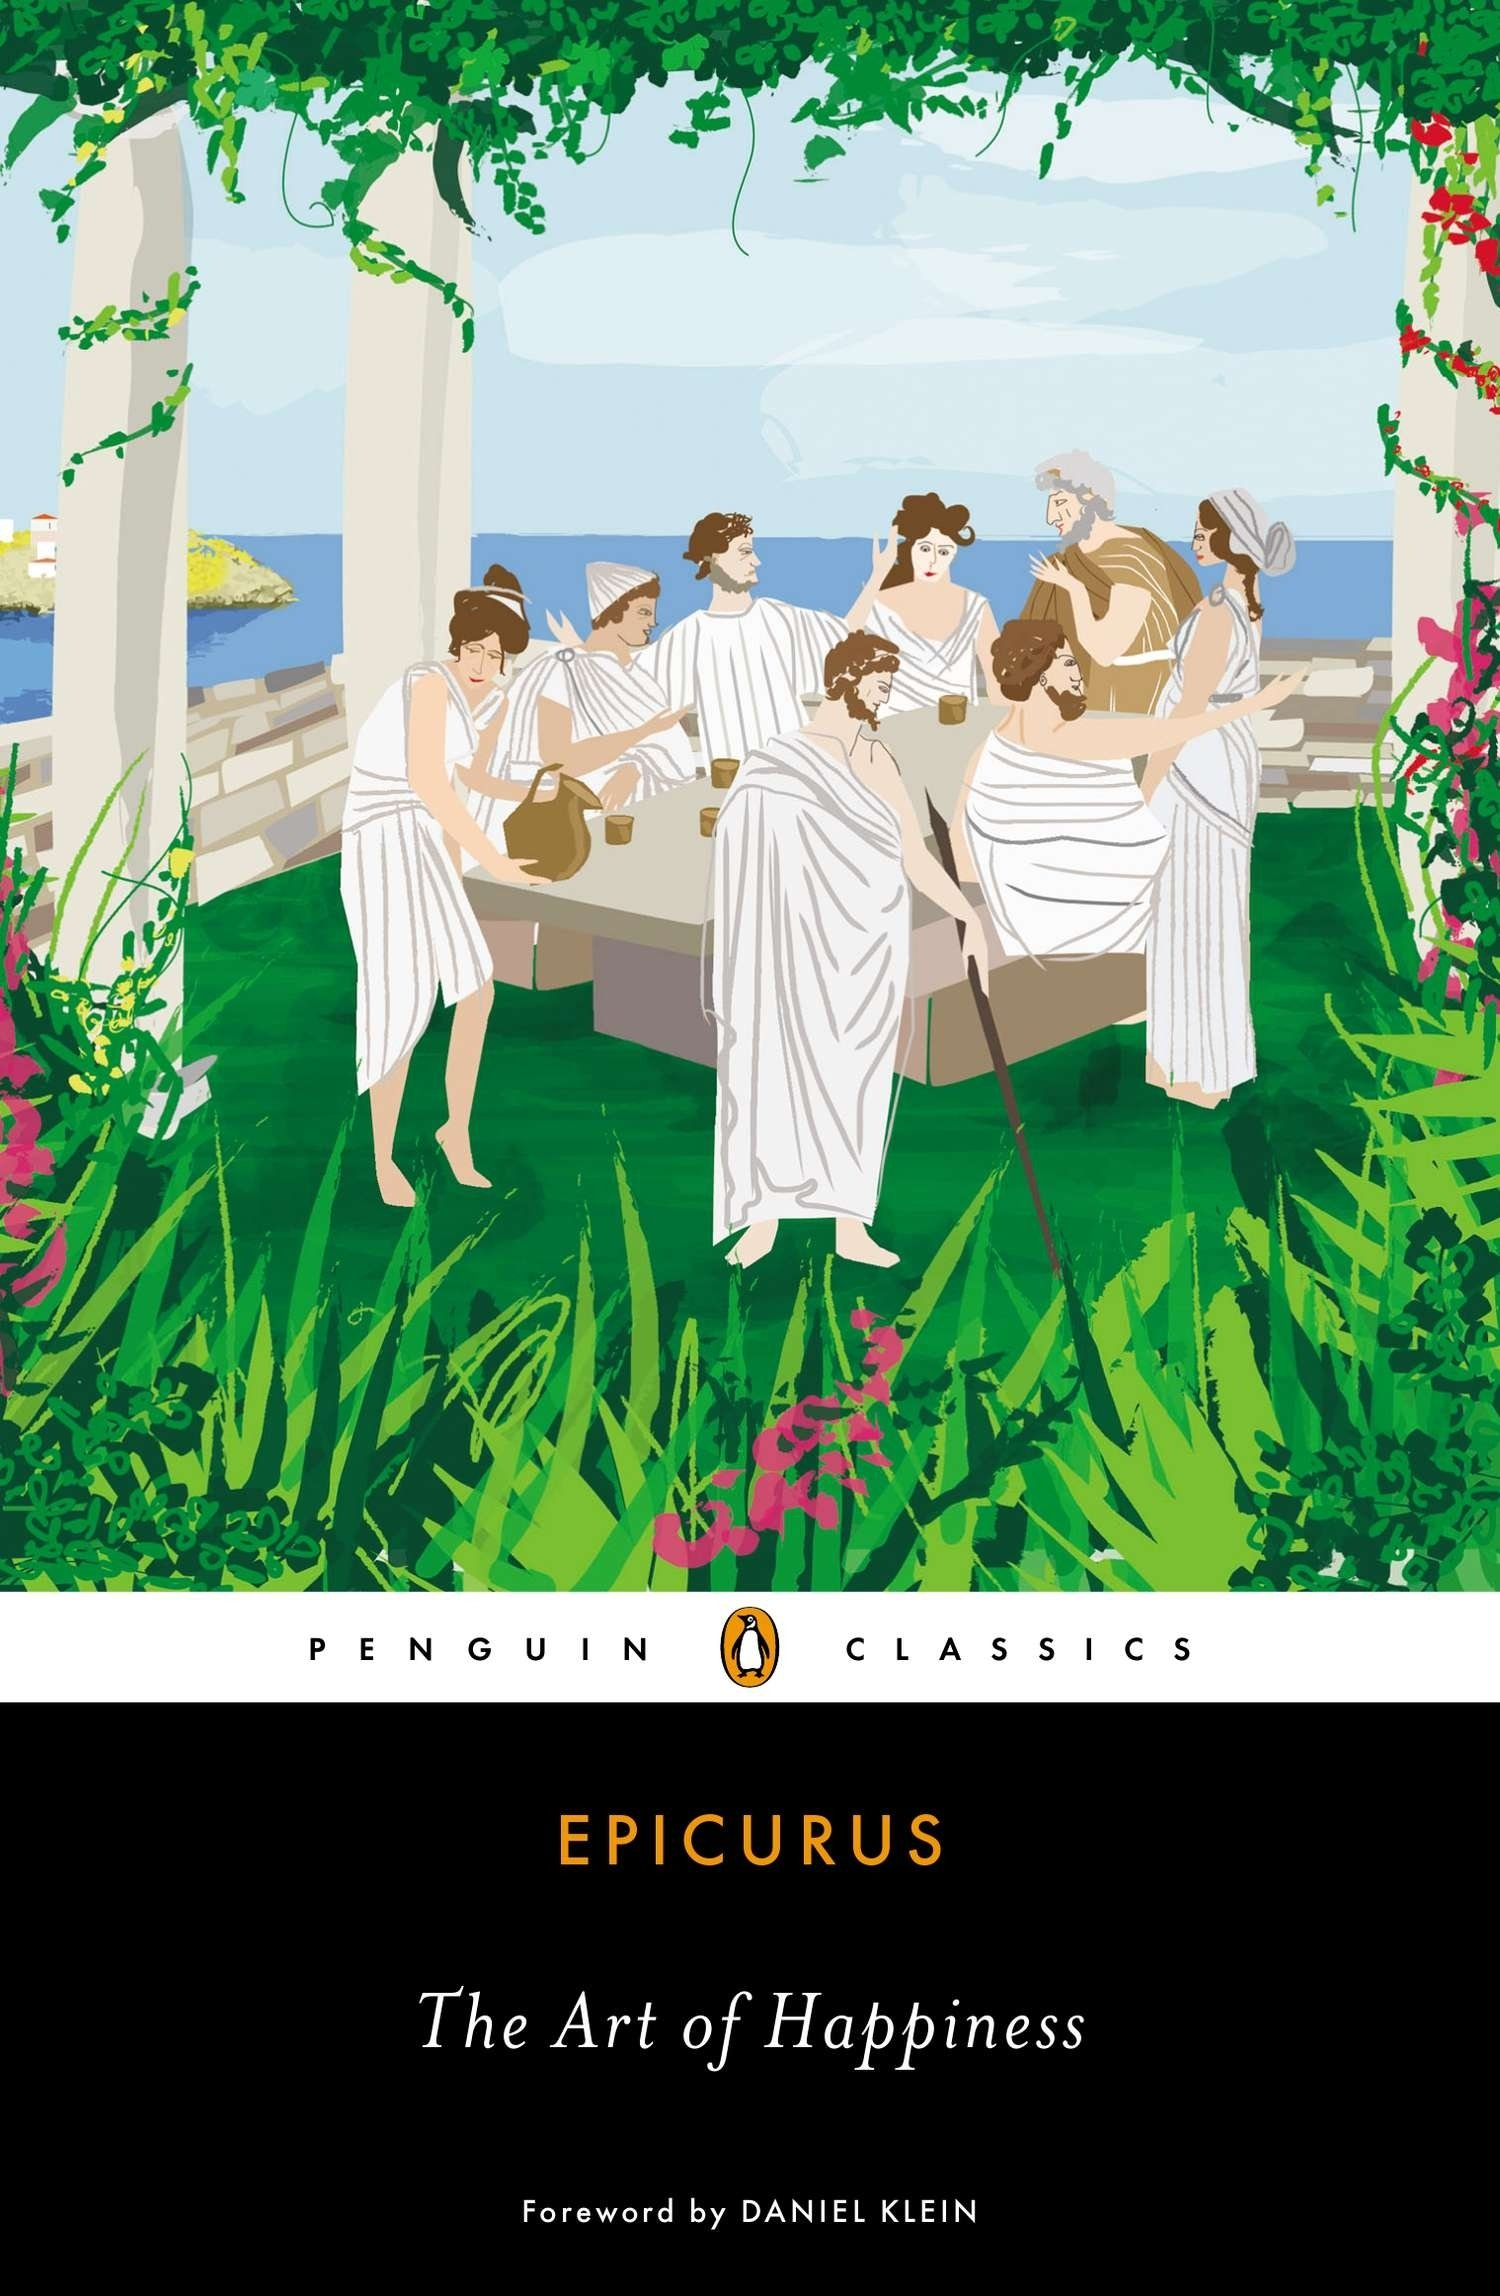 an analysis of the philosophical work the enchiridion by epictetus The paperback of the enchiridion: the manual for living [barnes & noble library of essential reading] by epictetus at barnes & noble free shipping on there is remarkable unity and coherence throughout the work then even those who cannot grasp the philosophical analysis of a plato.